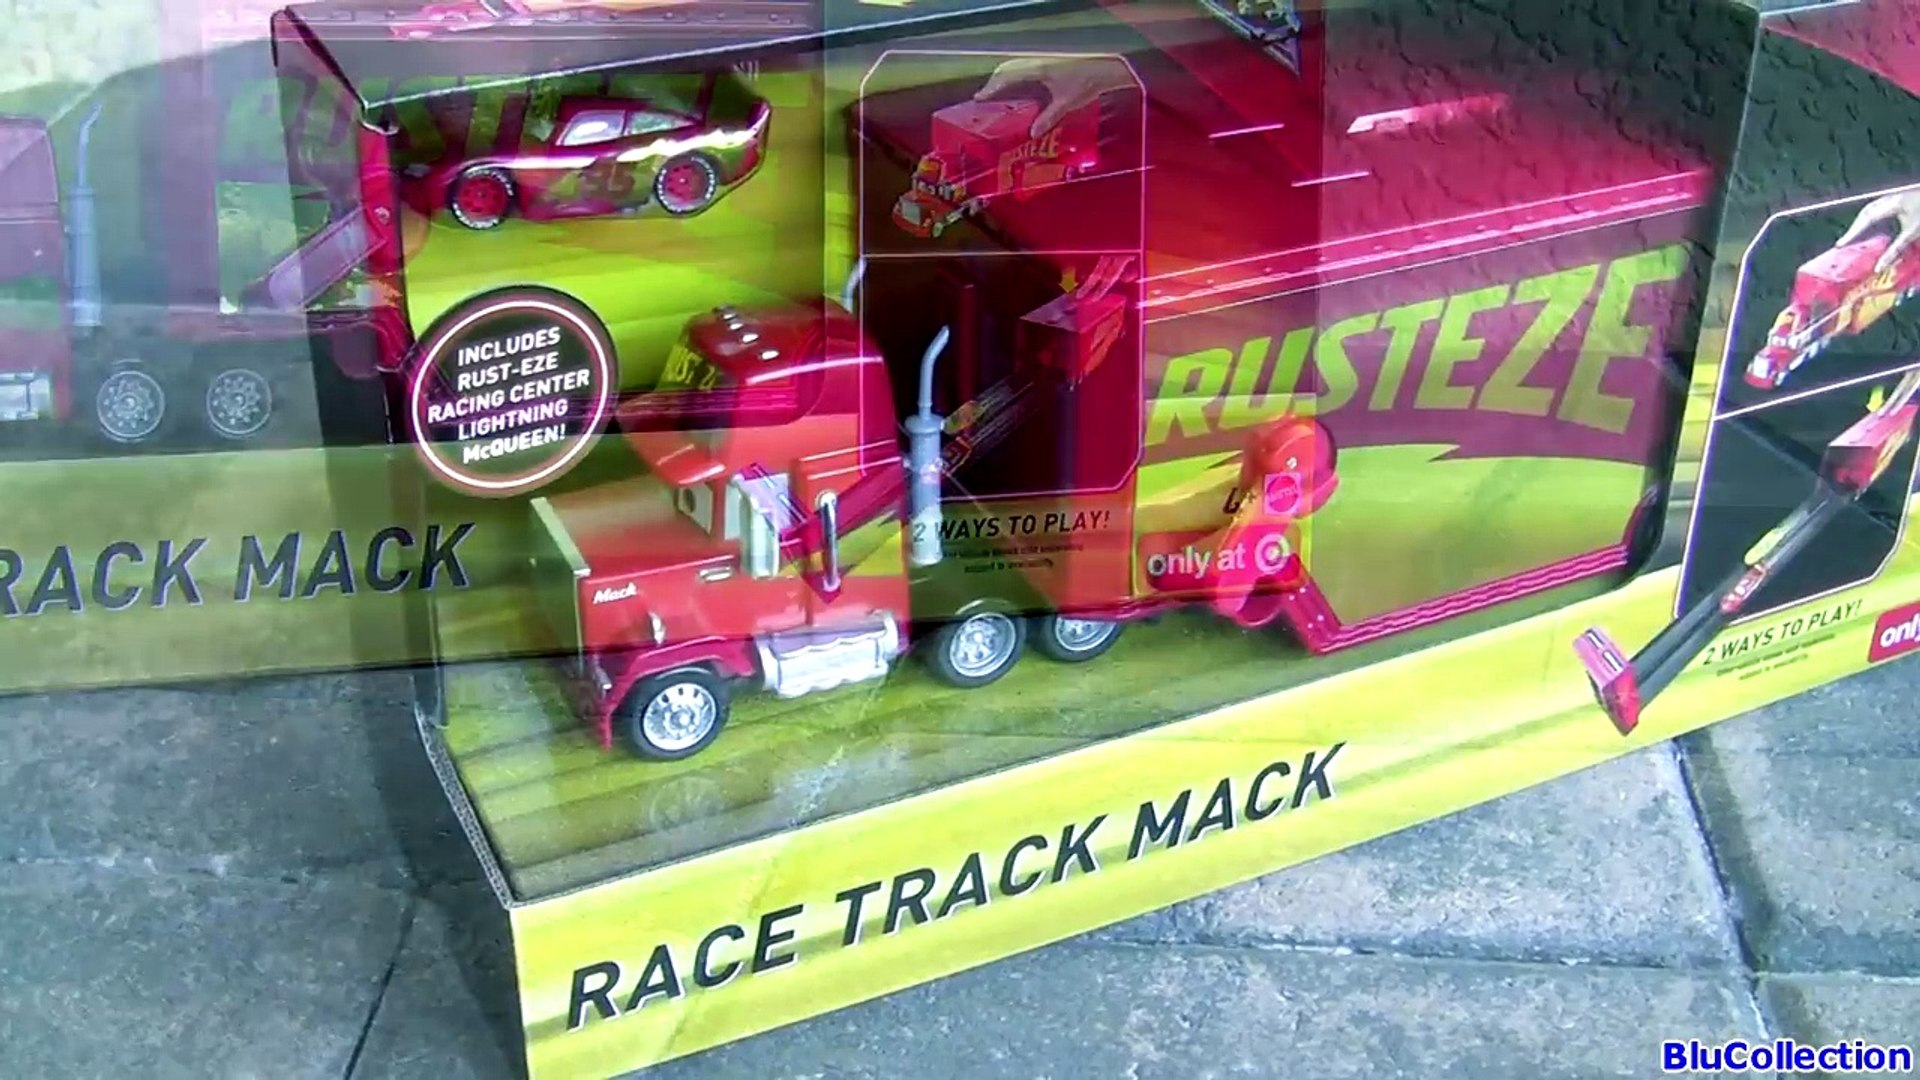 Disney Cars 3 Race Track Mack Playset New Rust Eze Racing Center